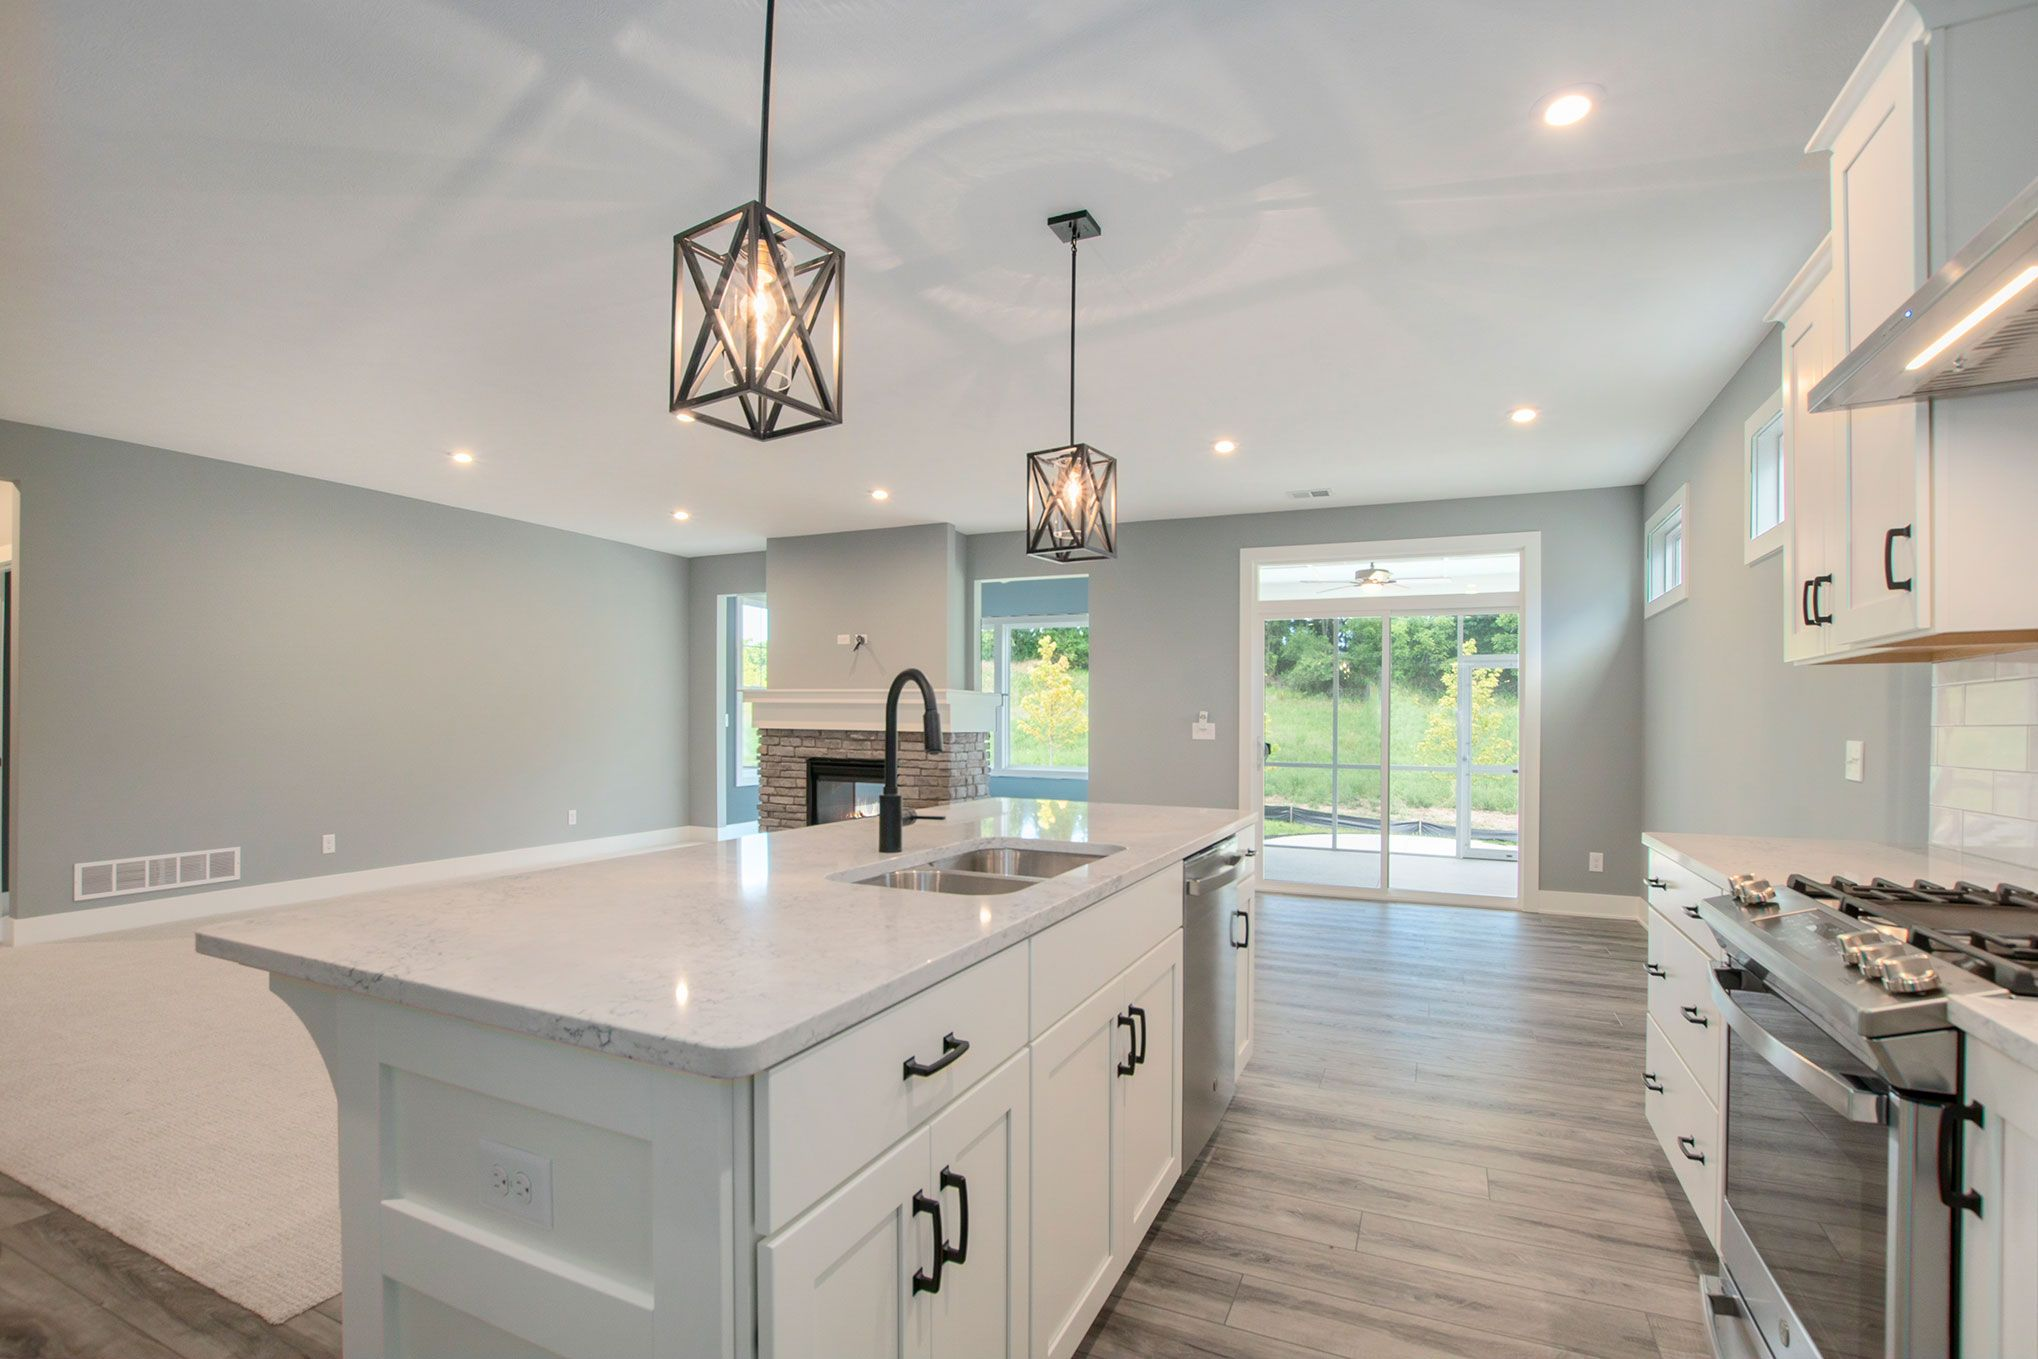 Kitchen featured in The Pentwater II By Eastbrook Homes Inc. in Grand Rapids, MI